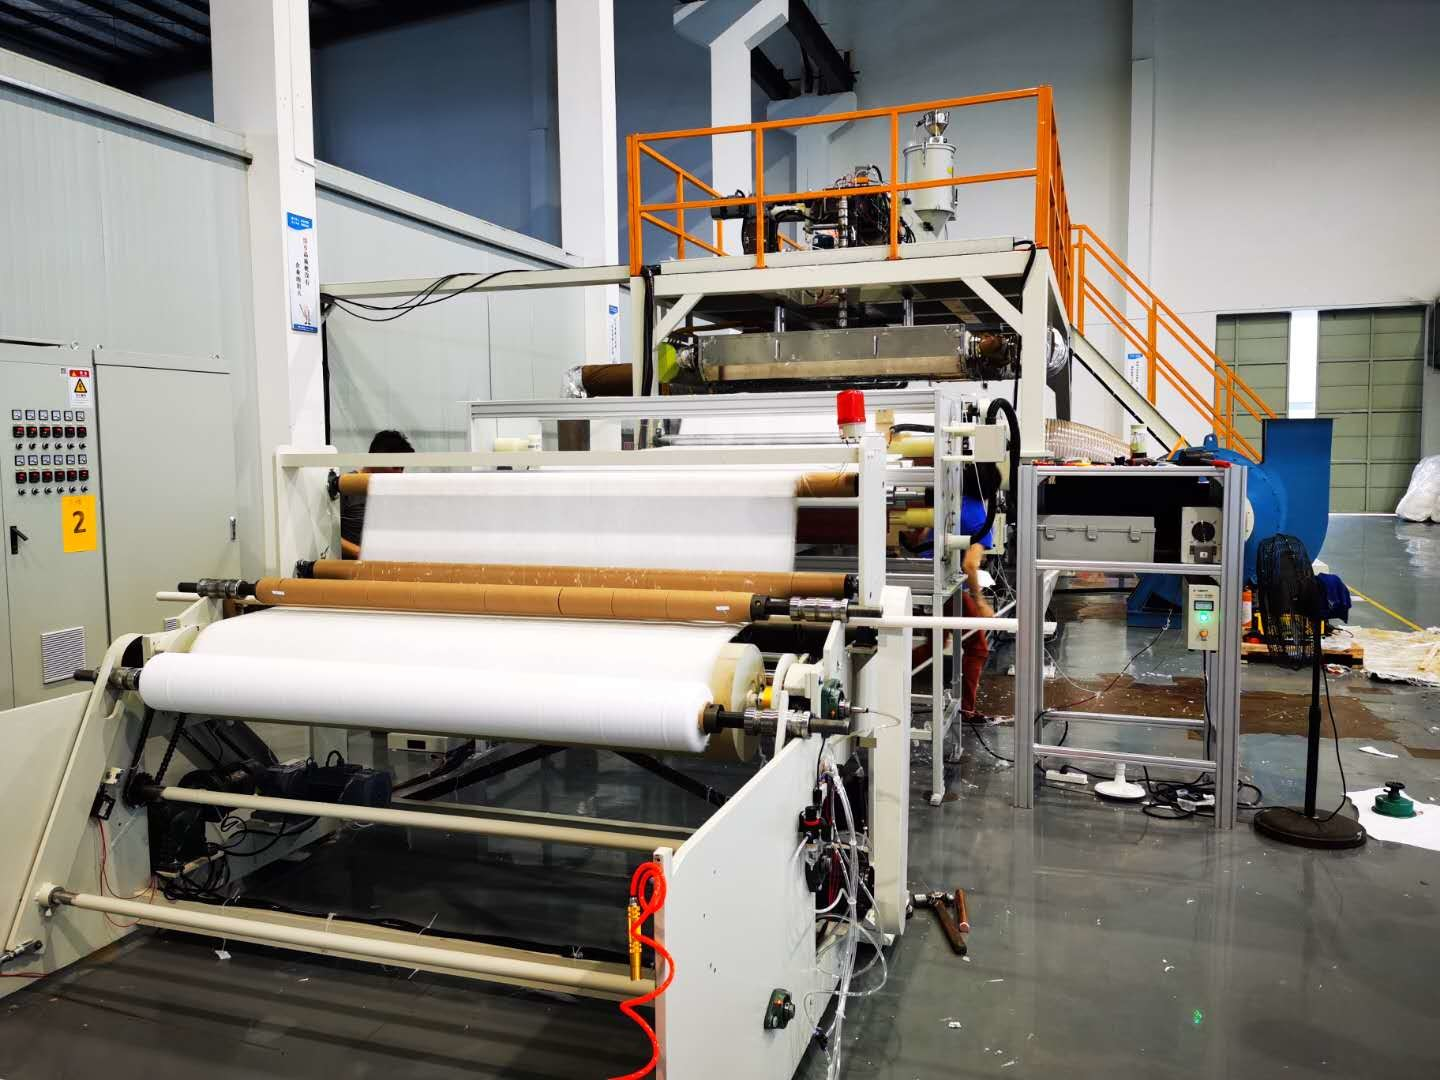 150gsm 160cm Non Woven Fabric Manufacturing Machine For Air Filltration